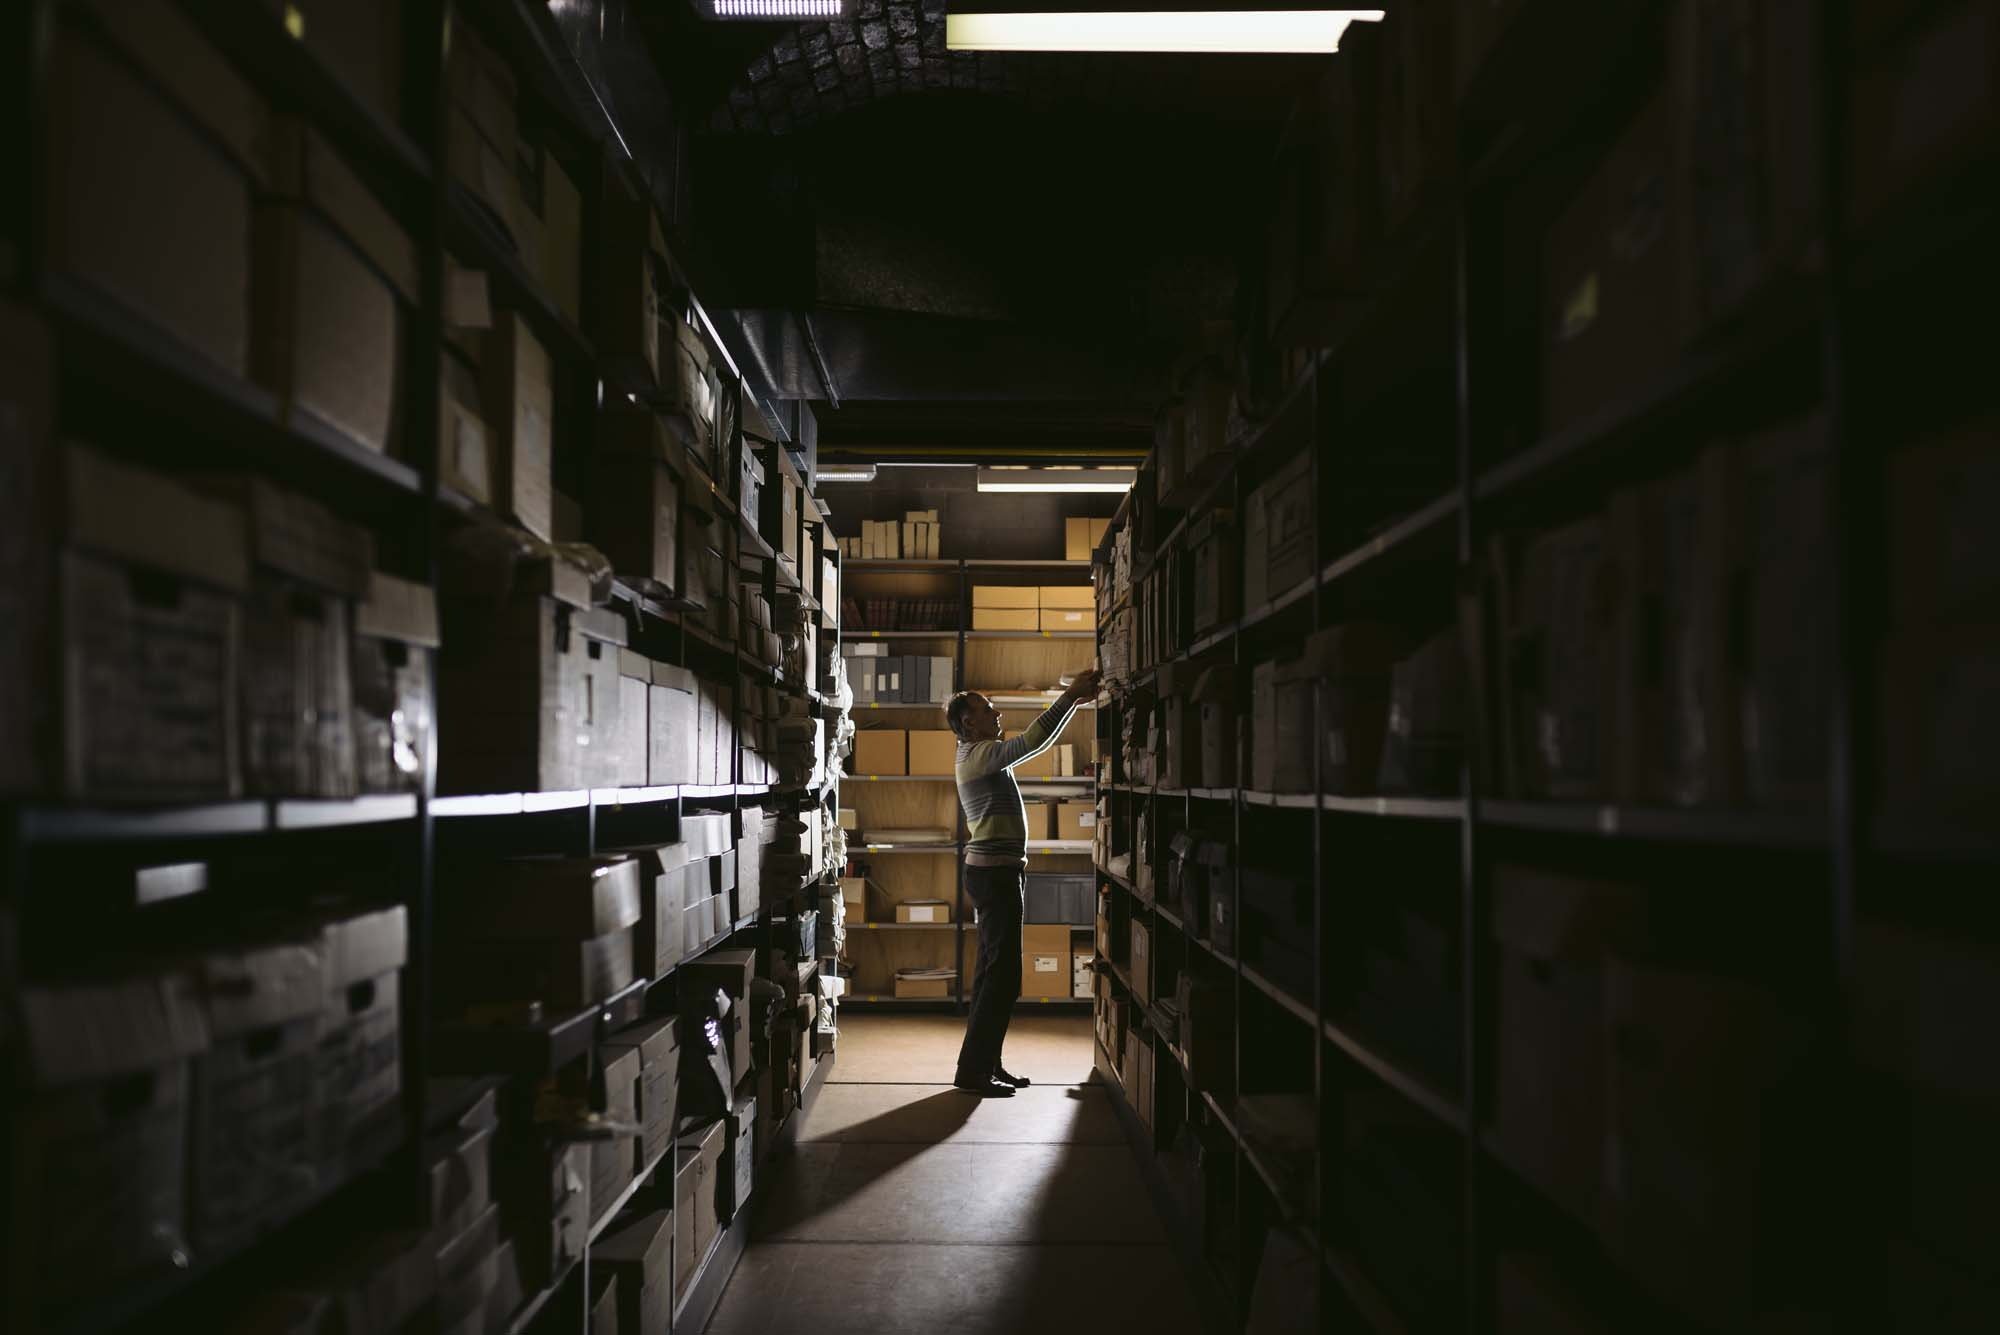 a photo of a store room with rows of racking